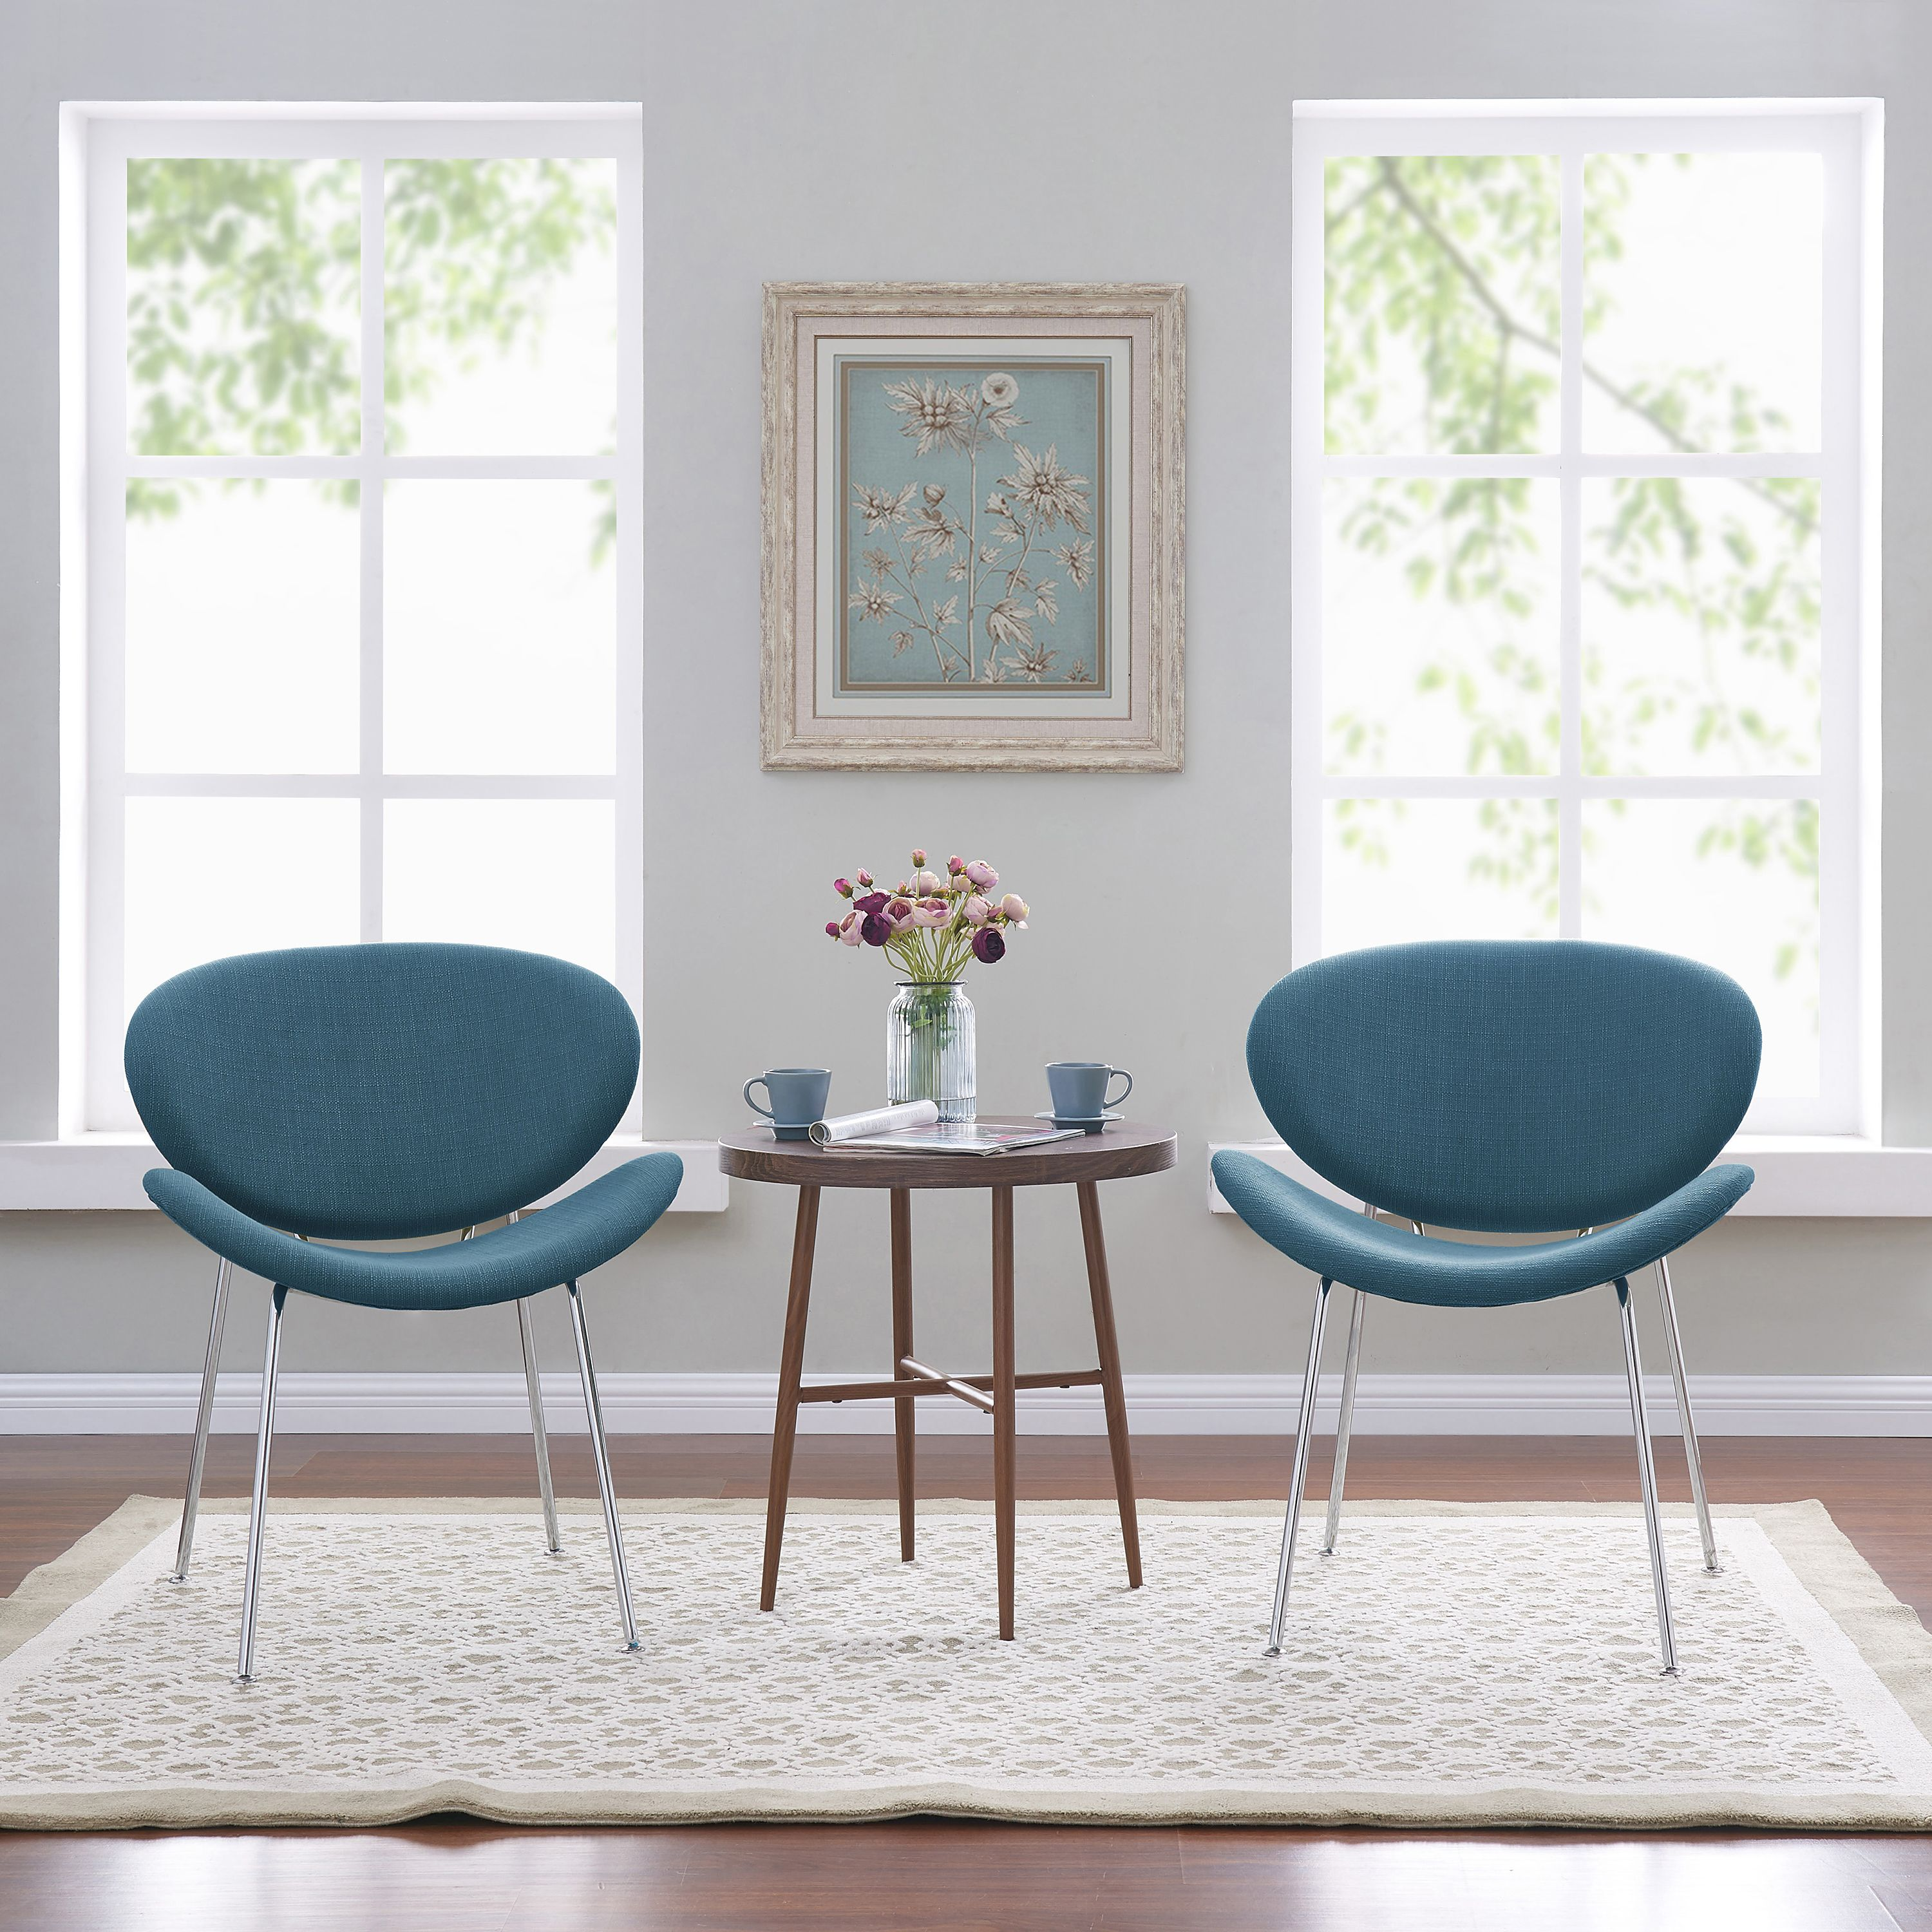 Mainstays Armless Metal Frame Accent Chair, Set of 2, Multiple Colors